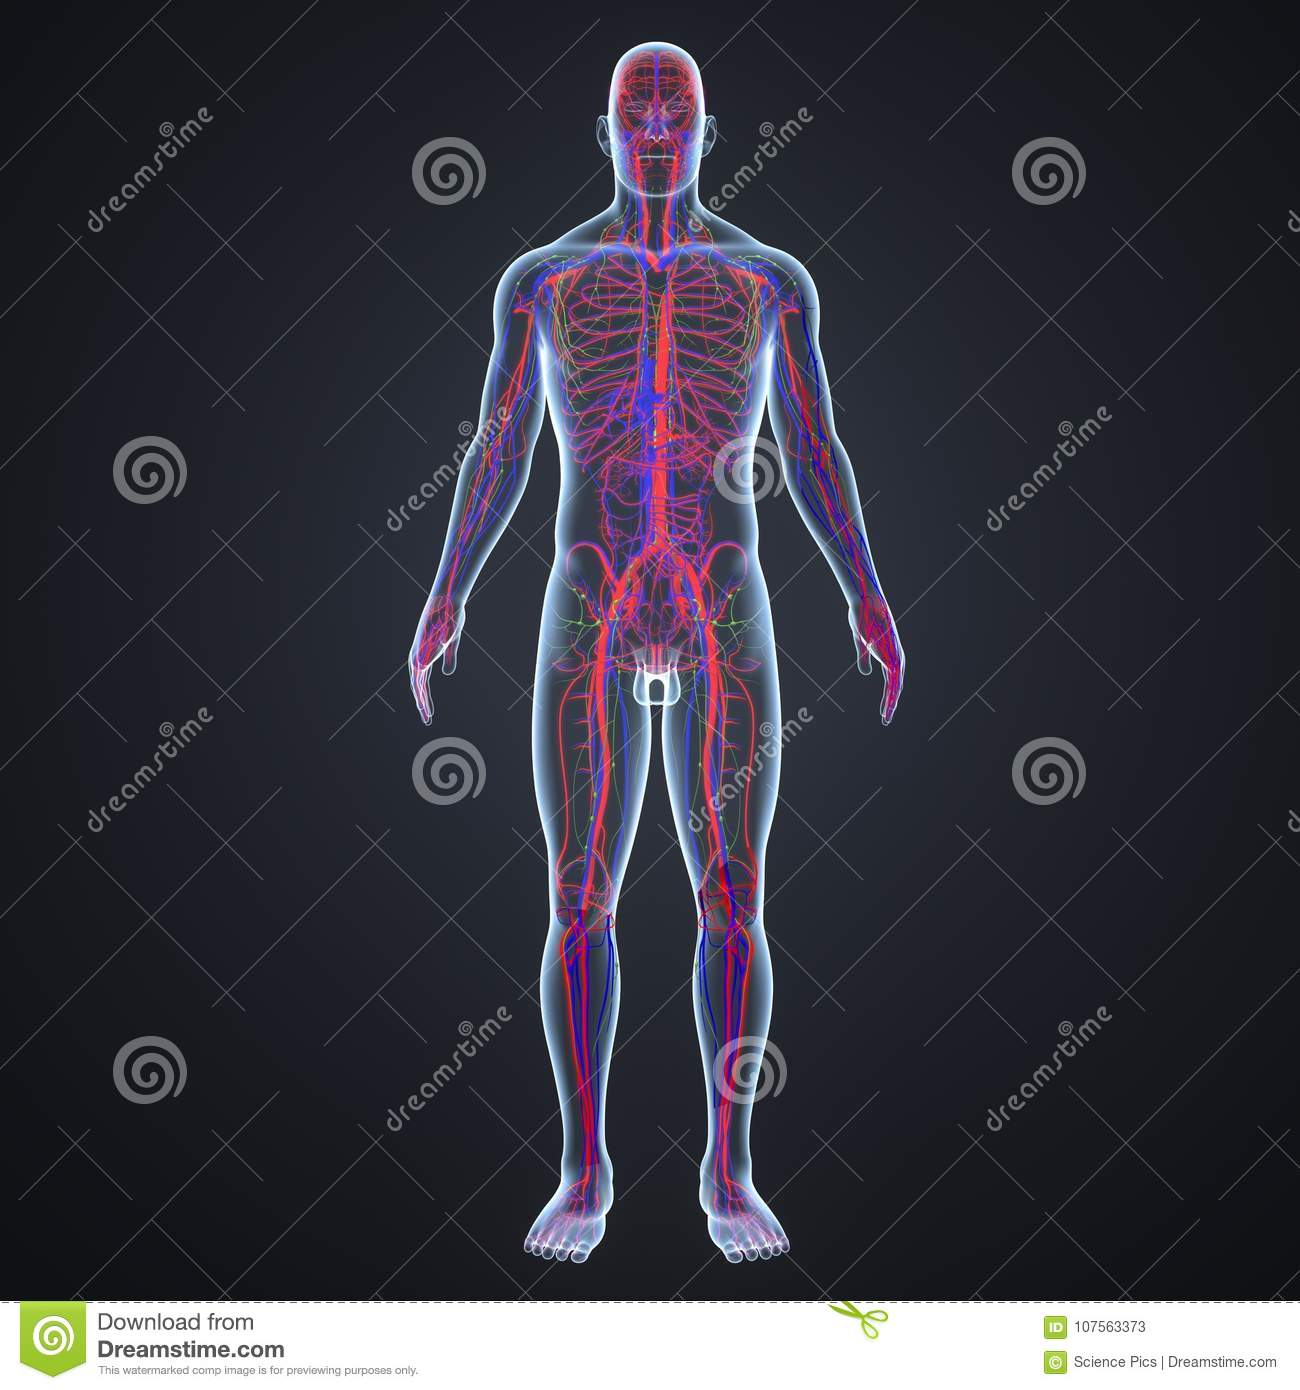 Arteries Veins And Lymph Nodes In Human Body Anterior View Stock